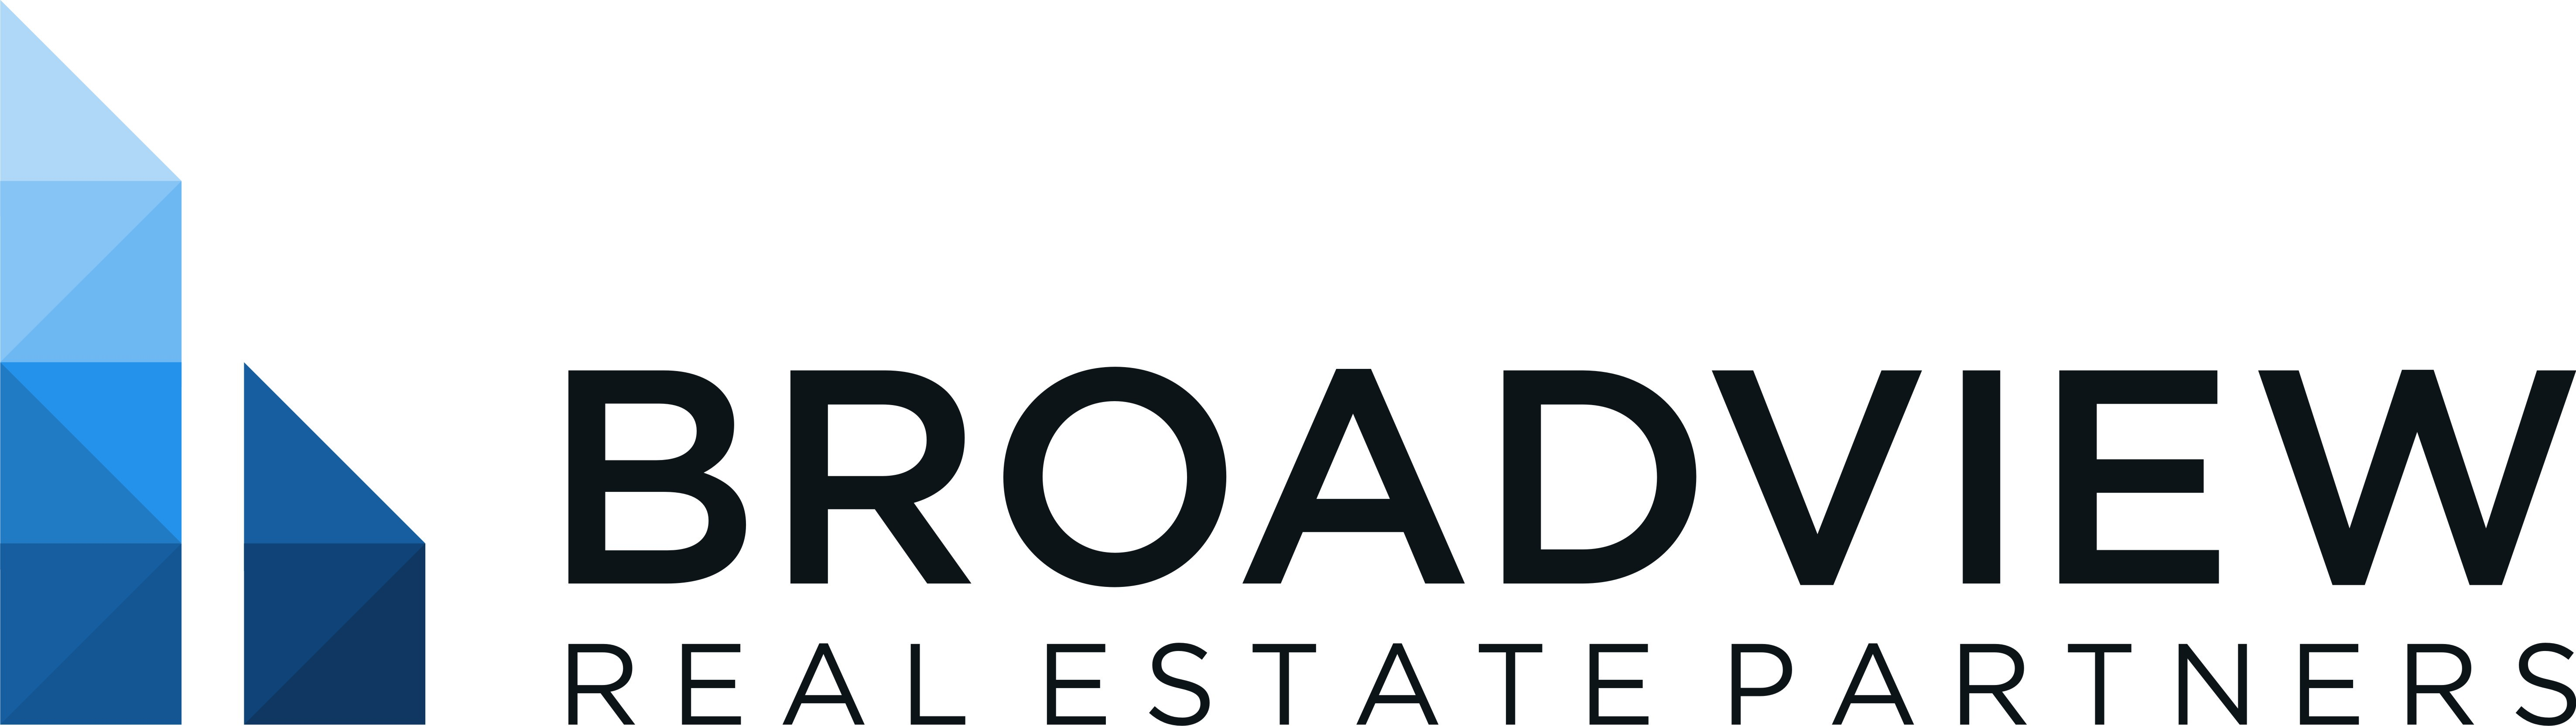 Commercial Real Estate Private Equity Firm Needs Logo